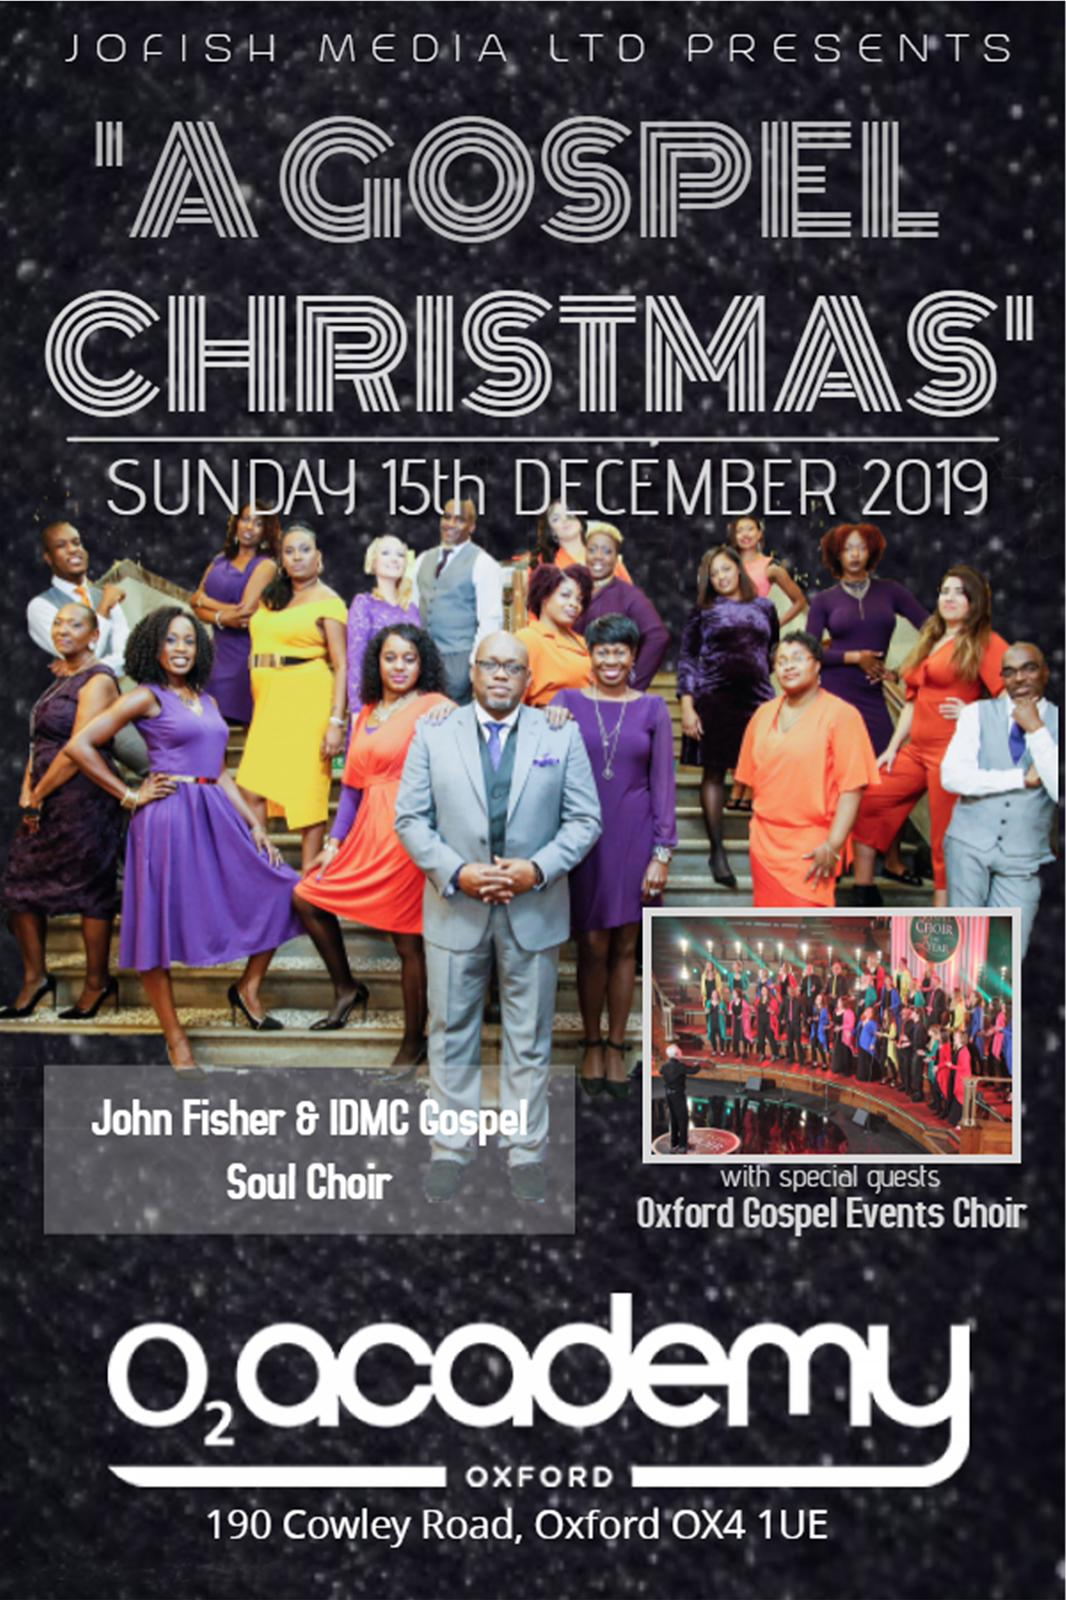 A Gospel Christmas with John Fisher and IDMC Gospel Soul Choir